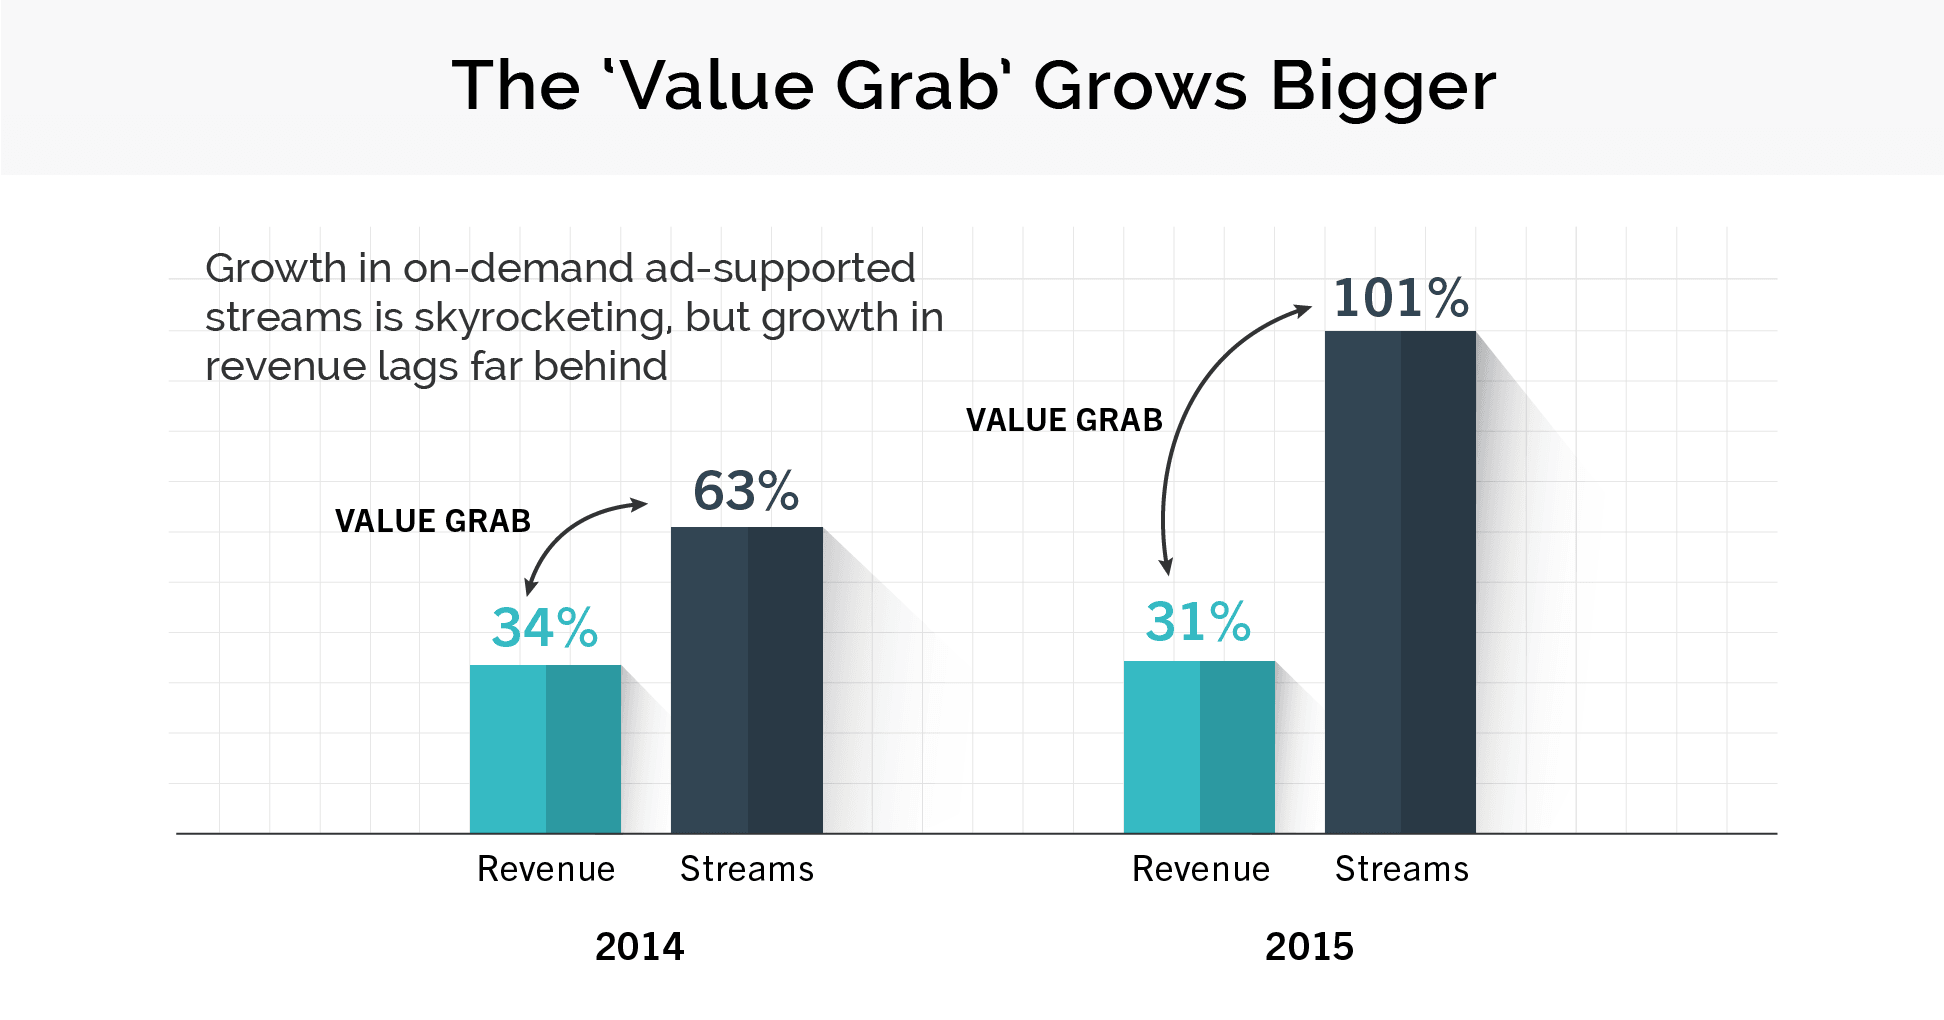 Ad-free streams are on the rise, but their revenues can't keep pace